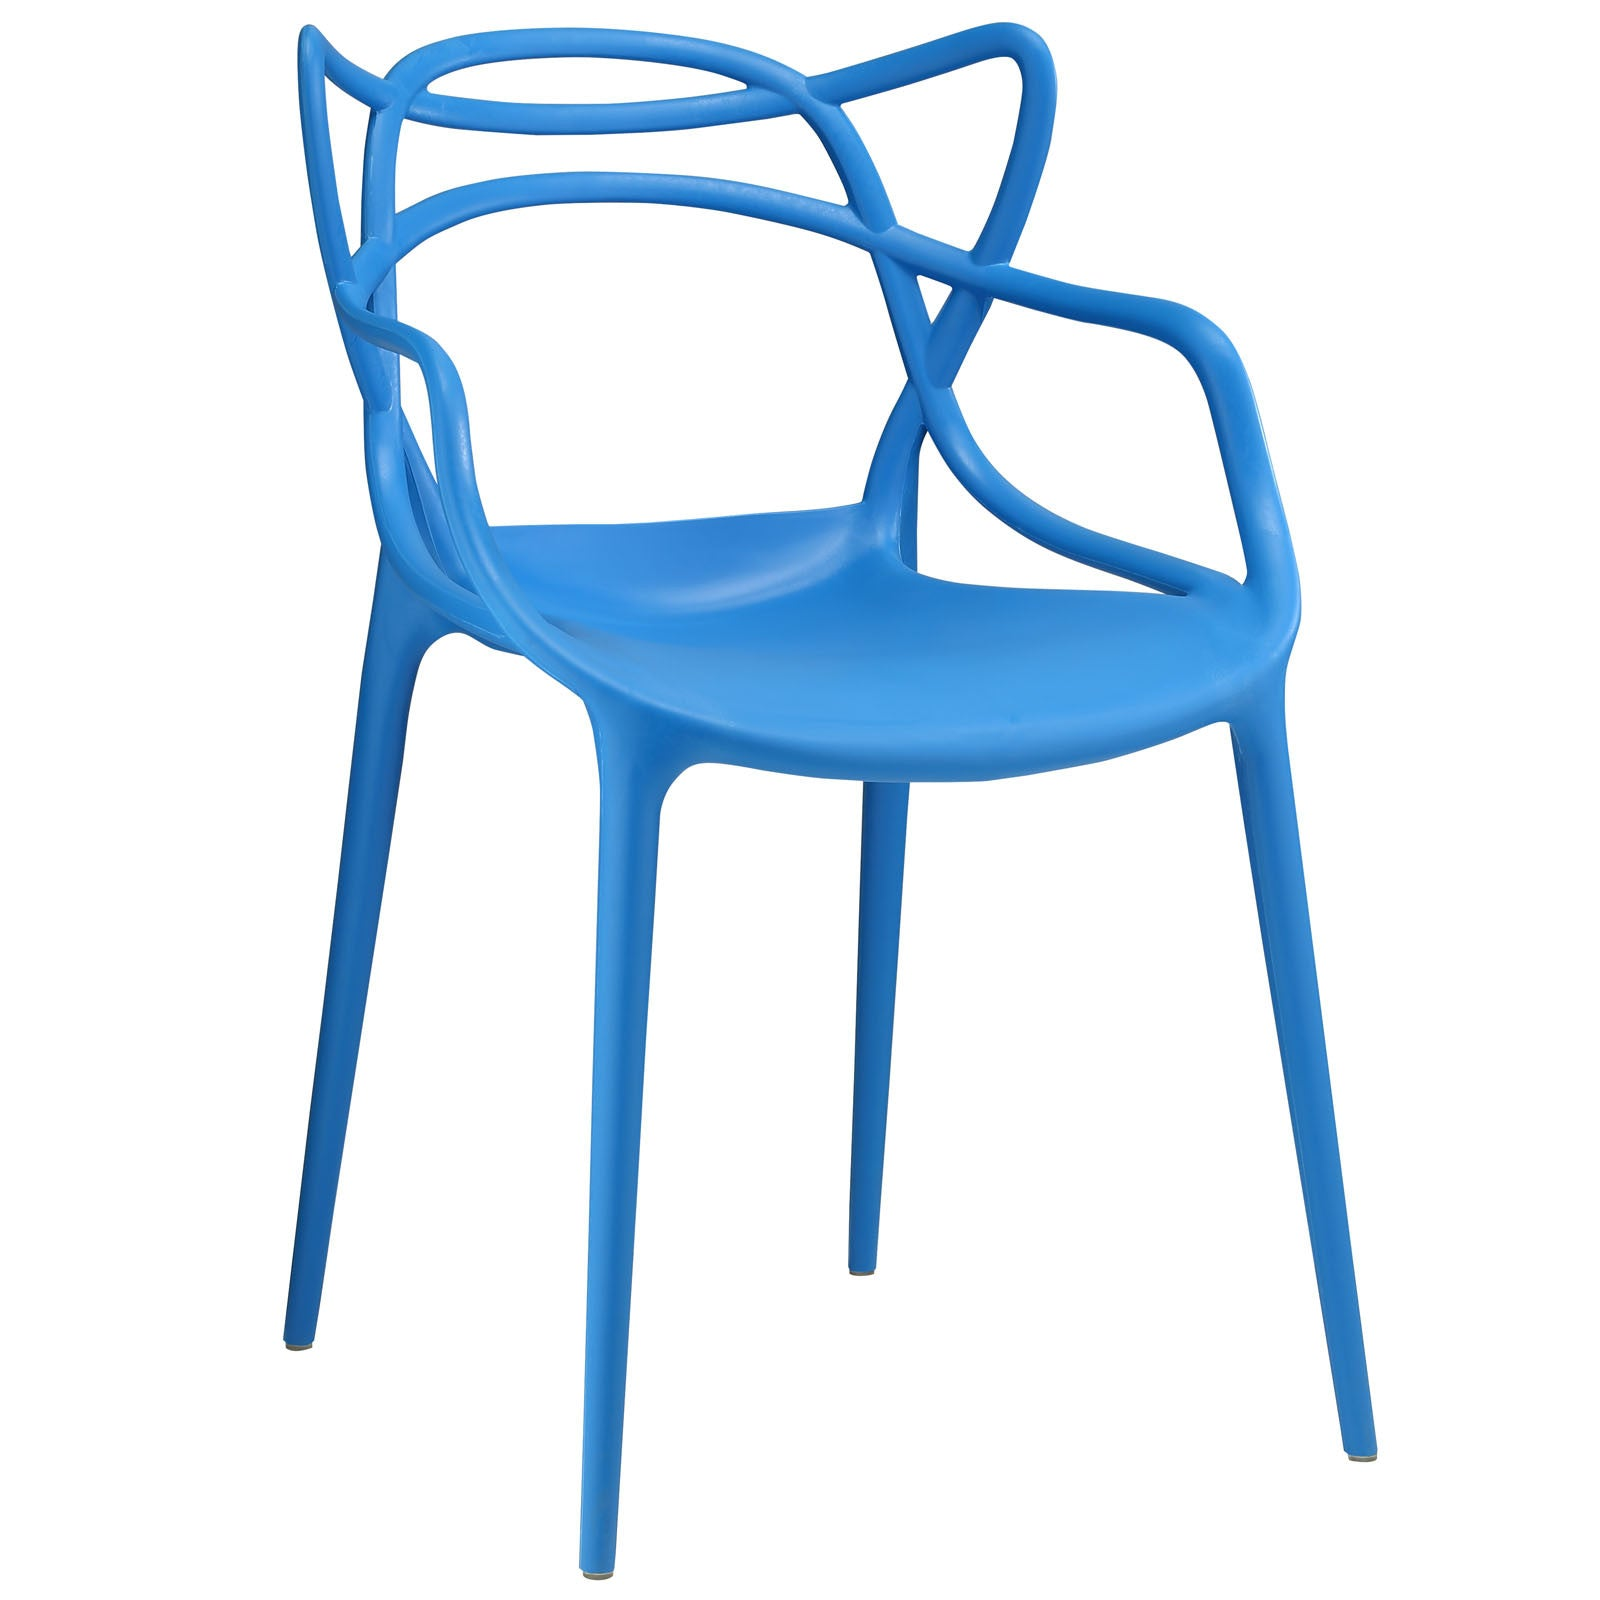 Superieur Philippe Starck Masters Chair Reproduction   The Modern Source   1 ...